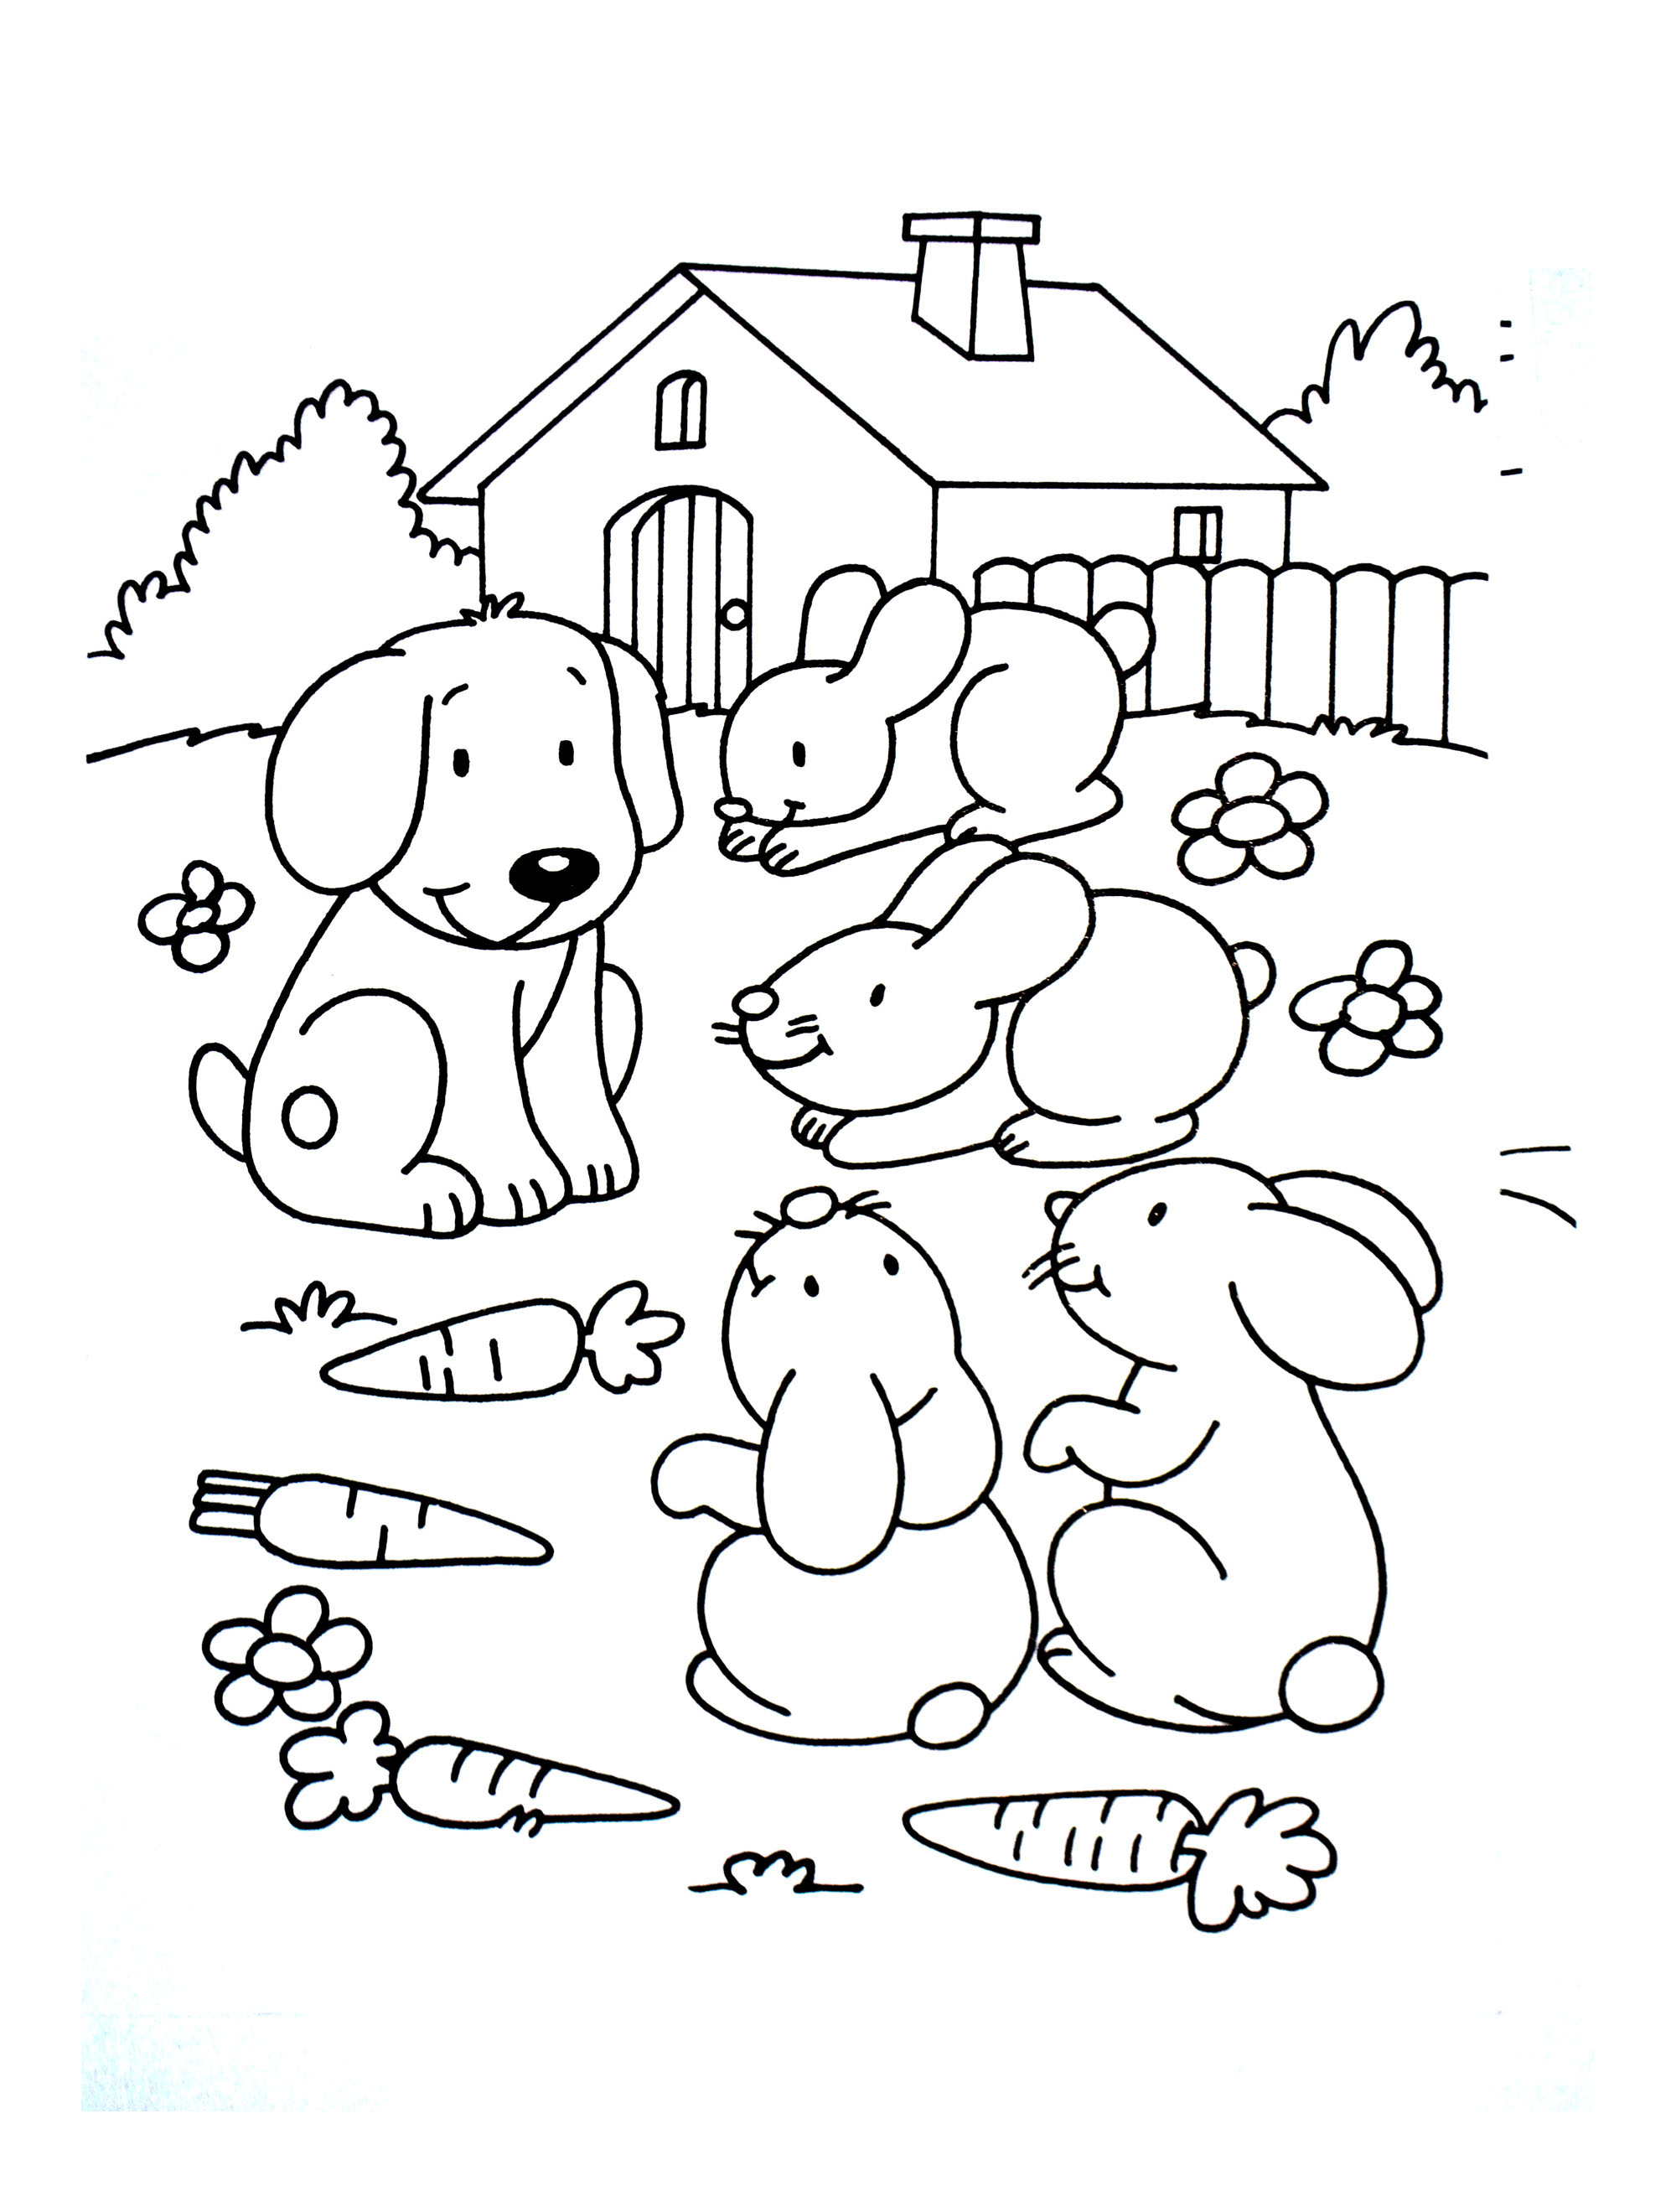 a imprimer chiens 3 coloriages de chiens coloriages enfants biboon. Black Bedroom Furniture Sets. Home Design Ideas